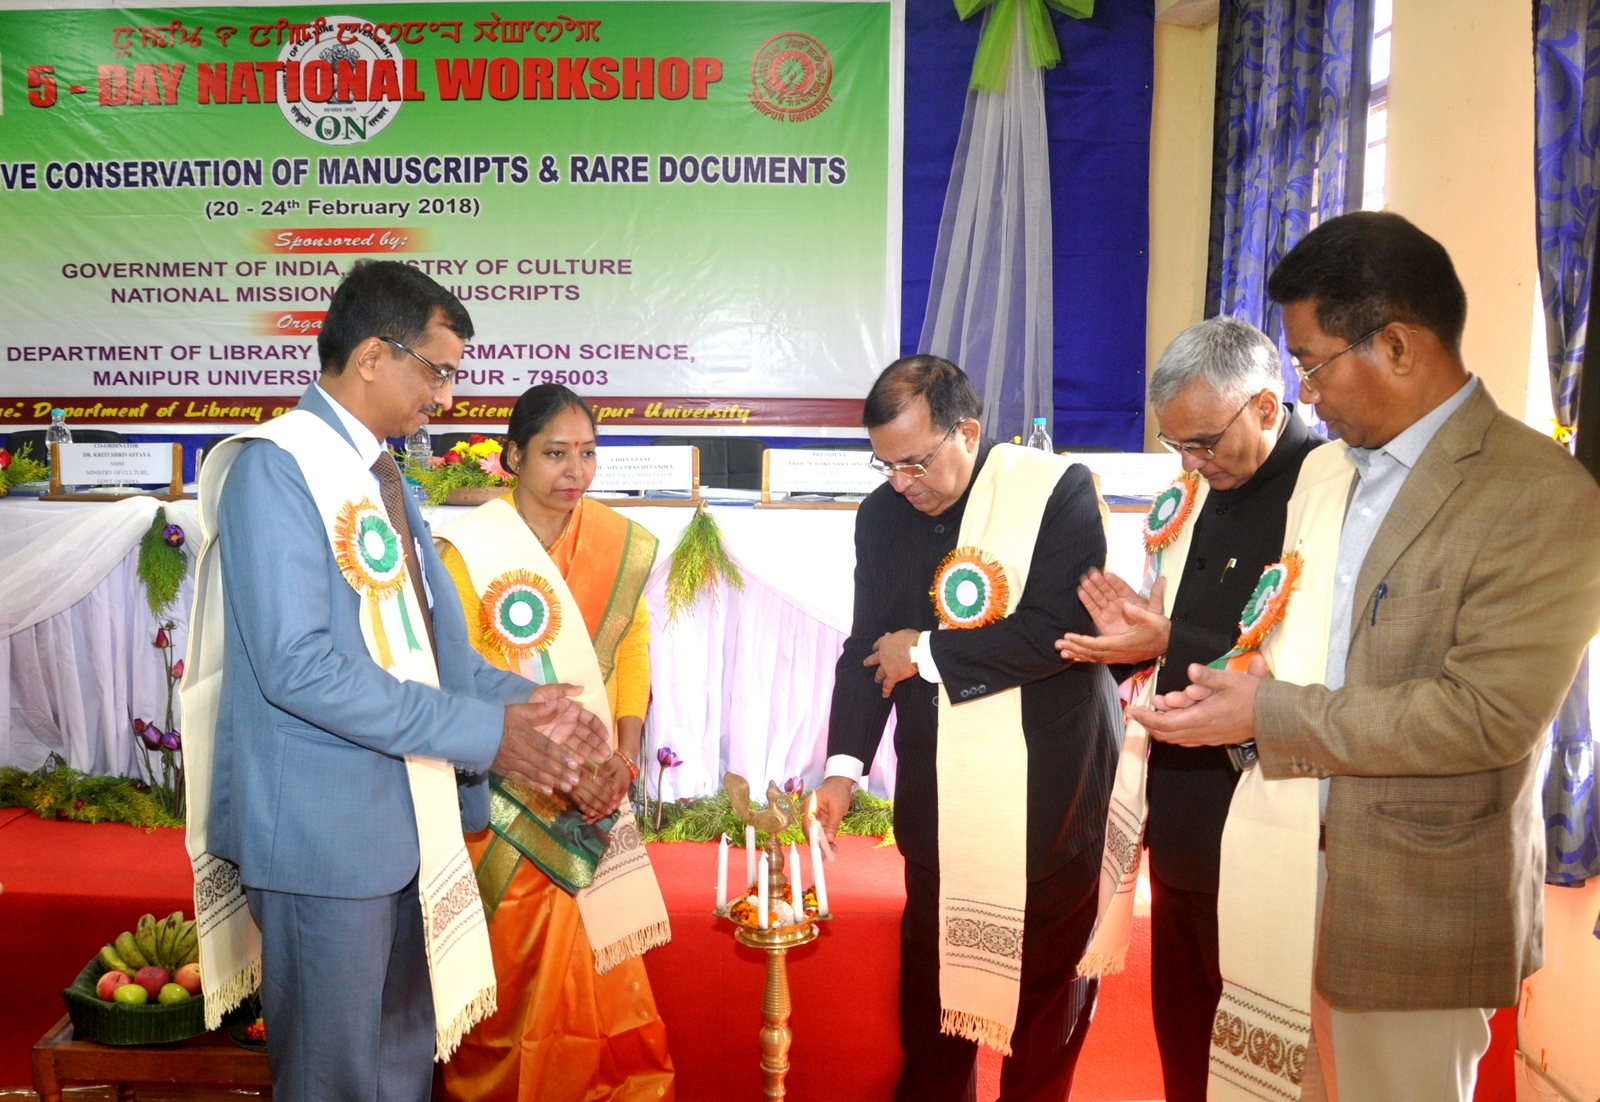 5-Day National Workshop on Preventive Conservation of Manuscripts & Rare documents